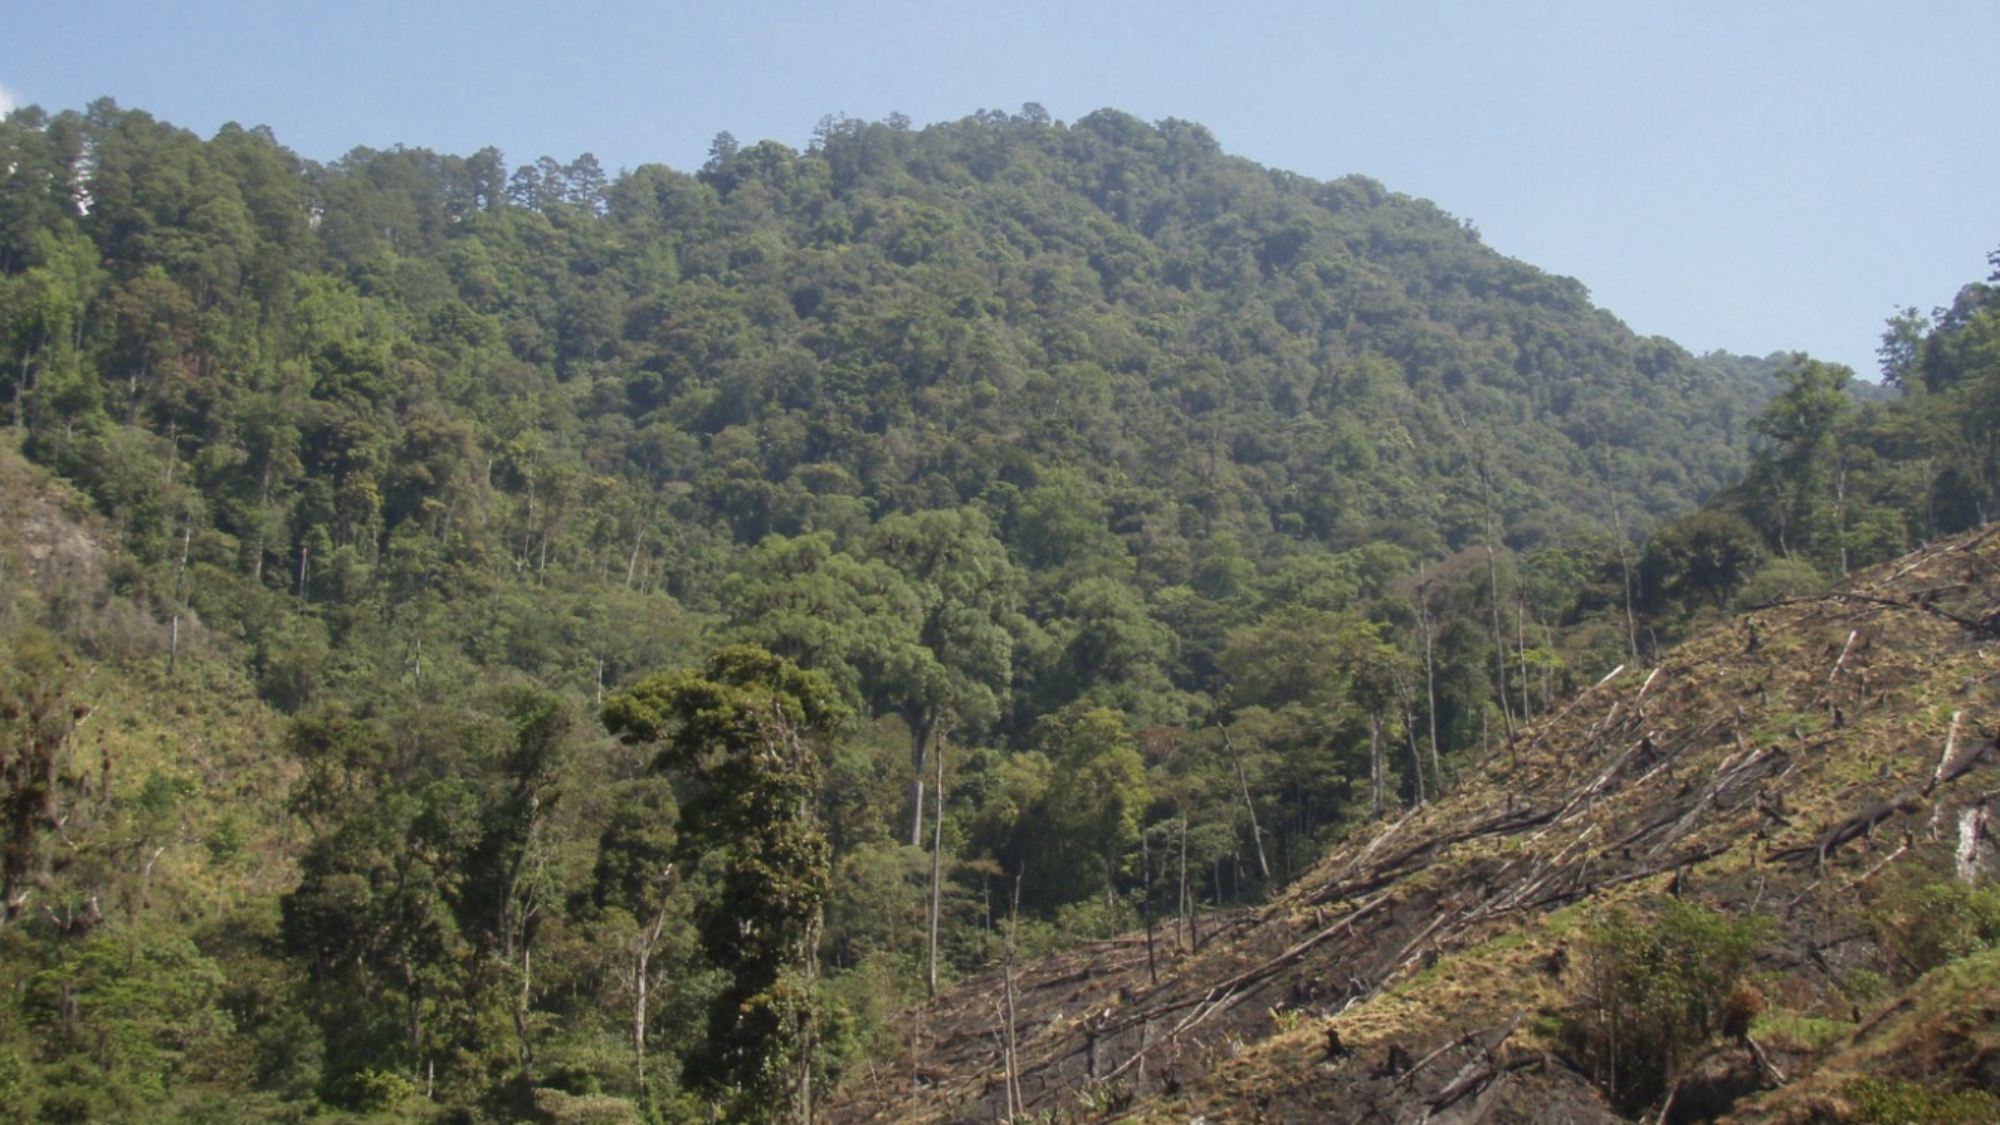 An image of a wide swathe of trees that have been cut down on the side of a mountain in Honduras.